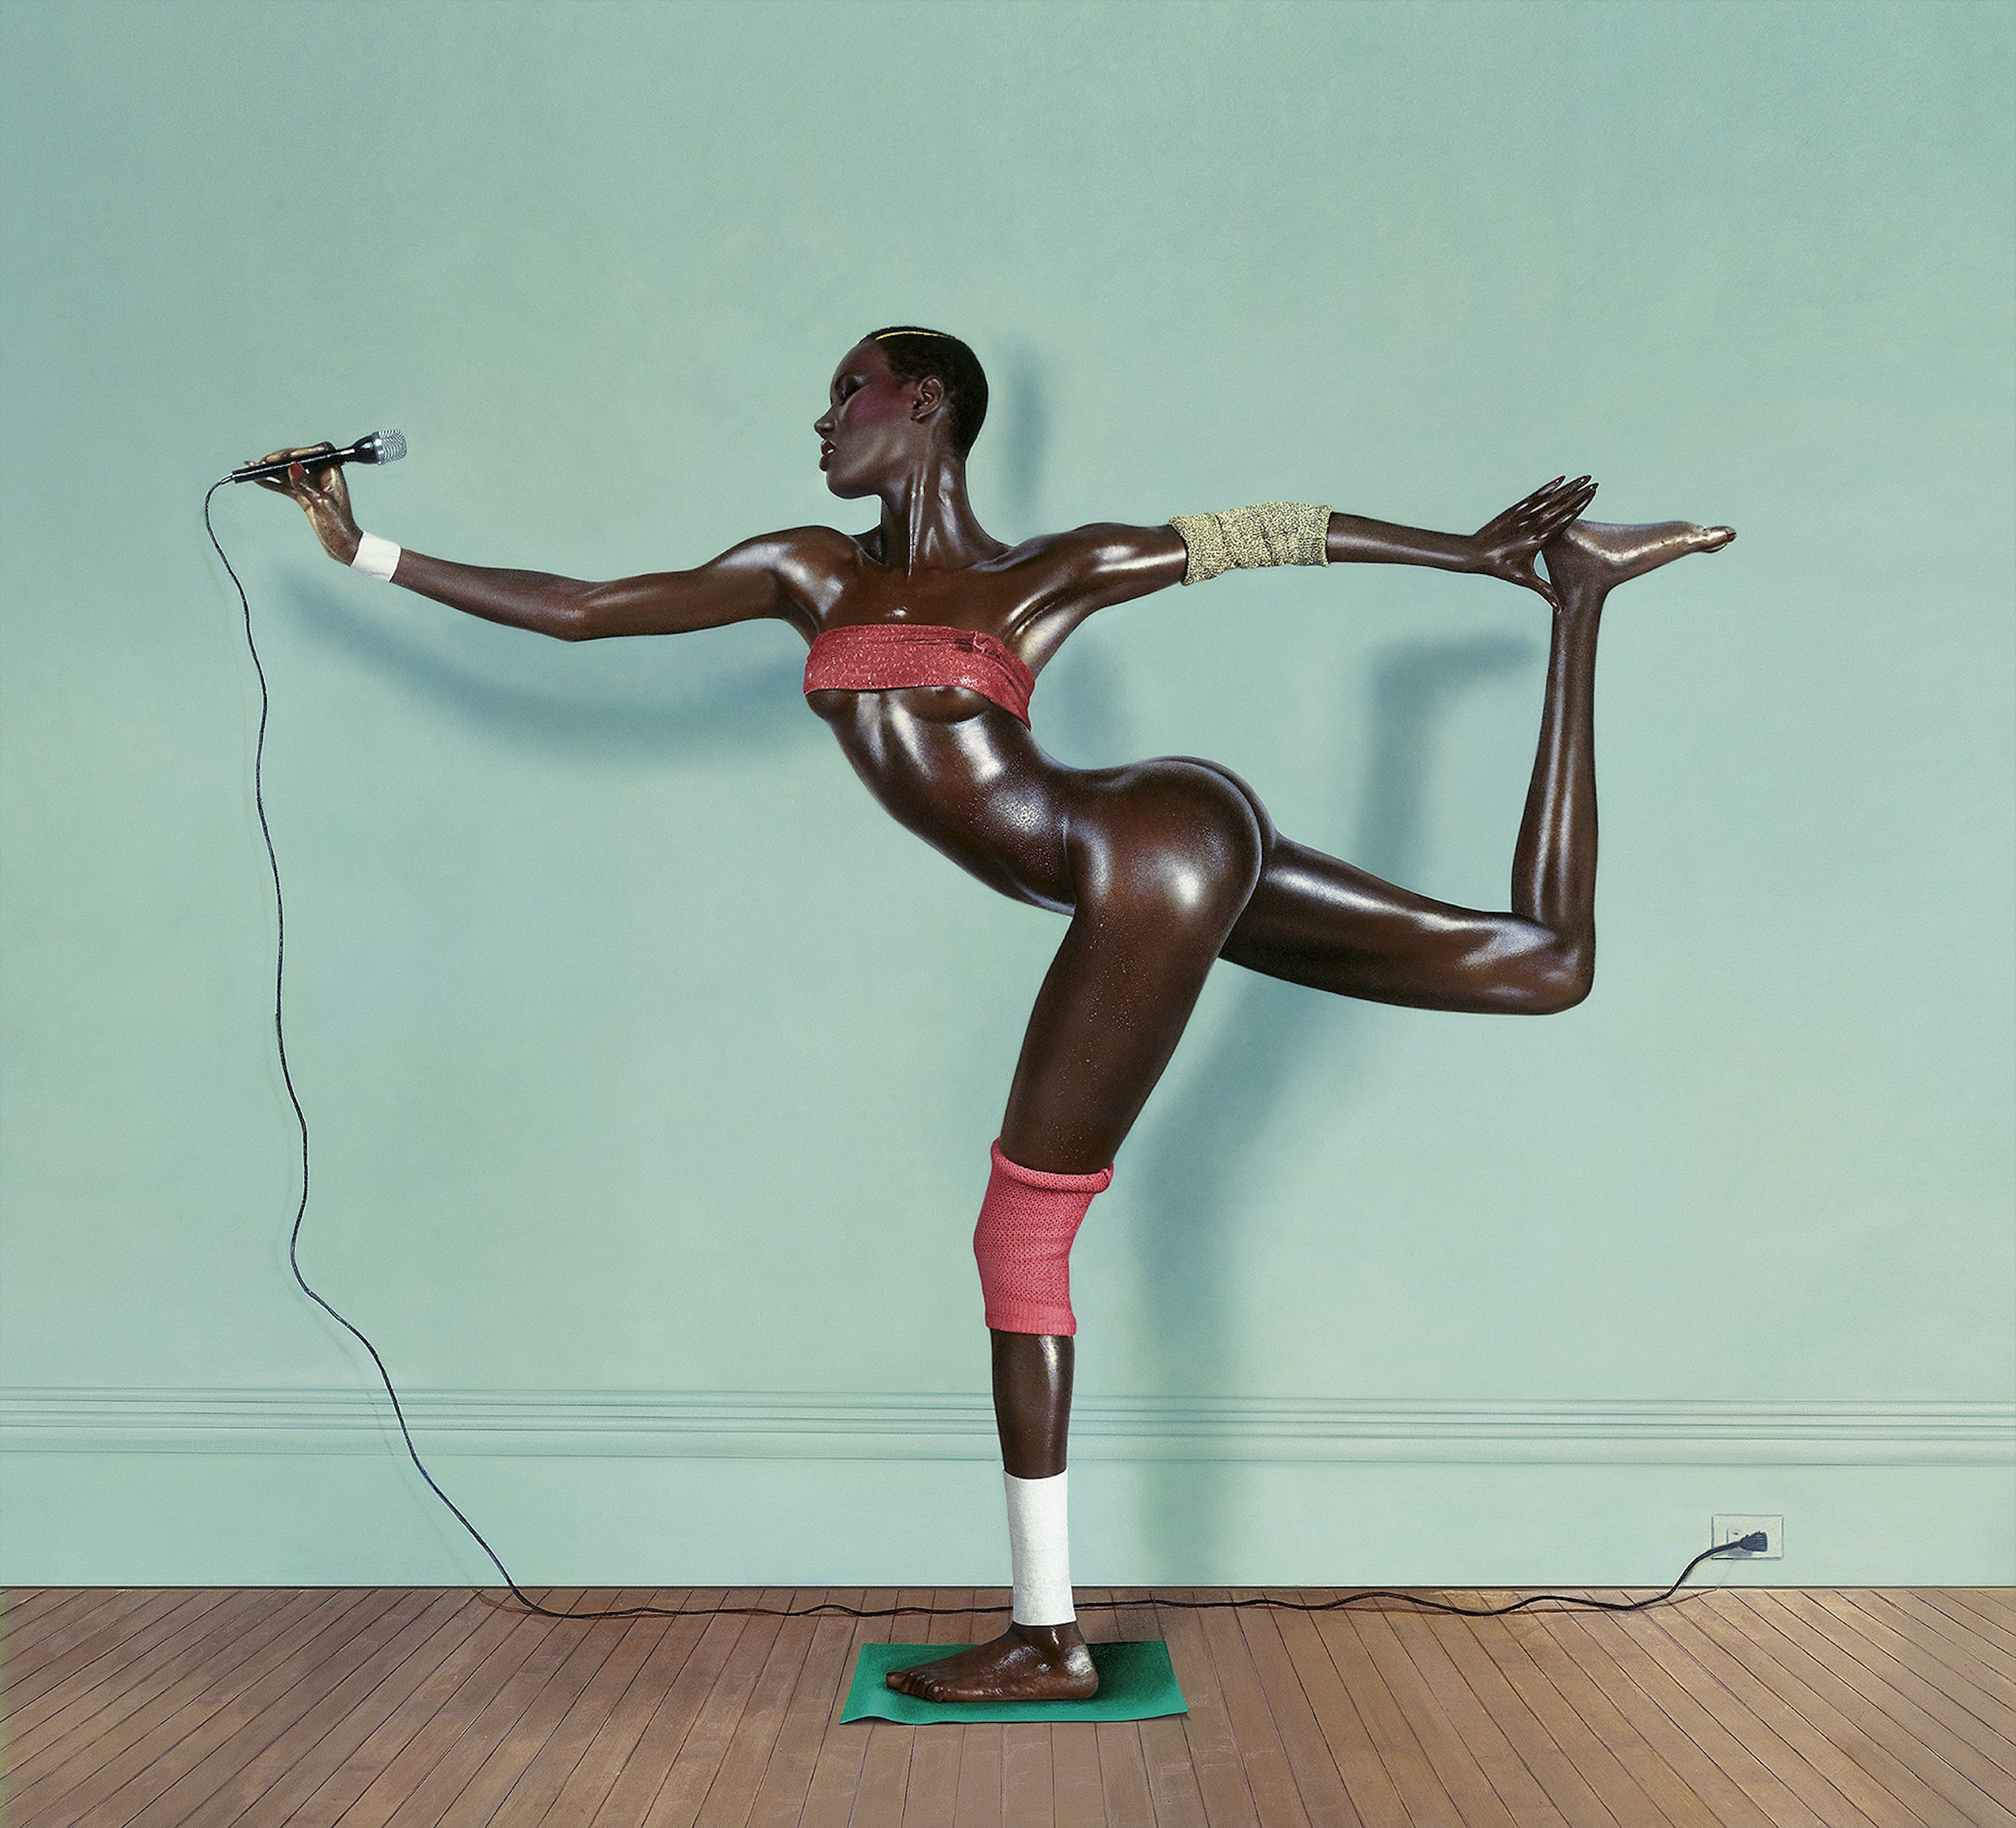 ジャン=ポール・グード「Grace revised and updated, painted photo, New York」1978年 (c) Jean-Paul Goude